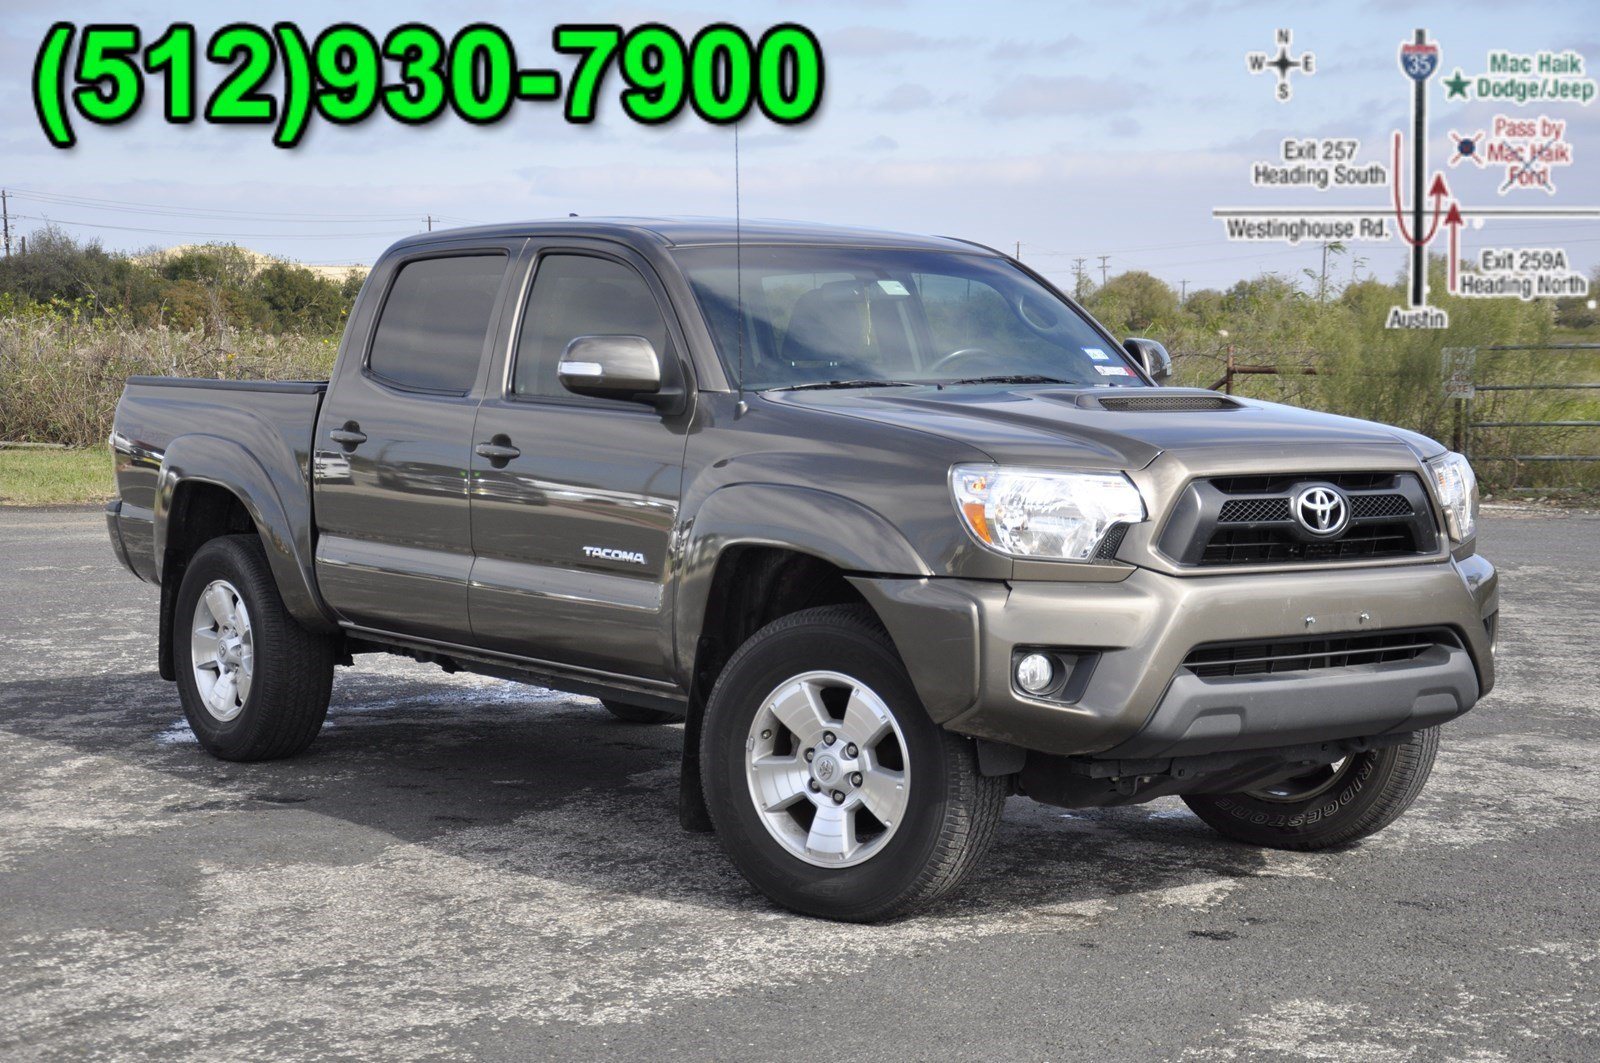 2015 Toyota Tacoma Prerunner Trd Sport Crew Cab Pickup For Sale In